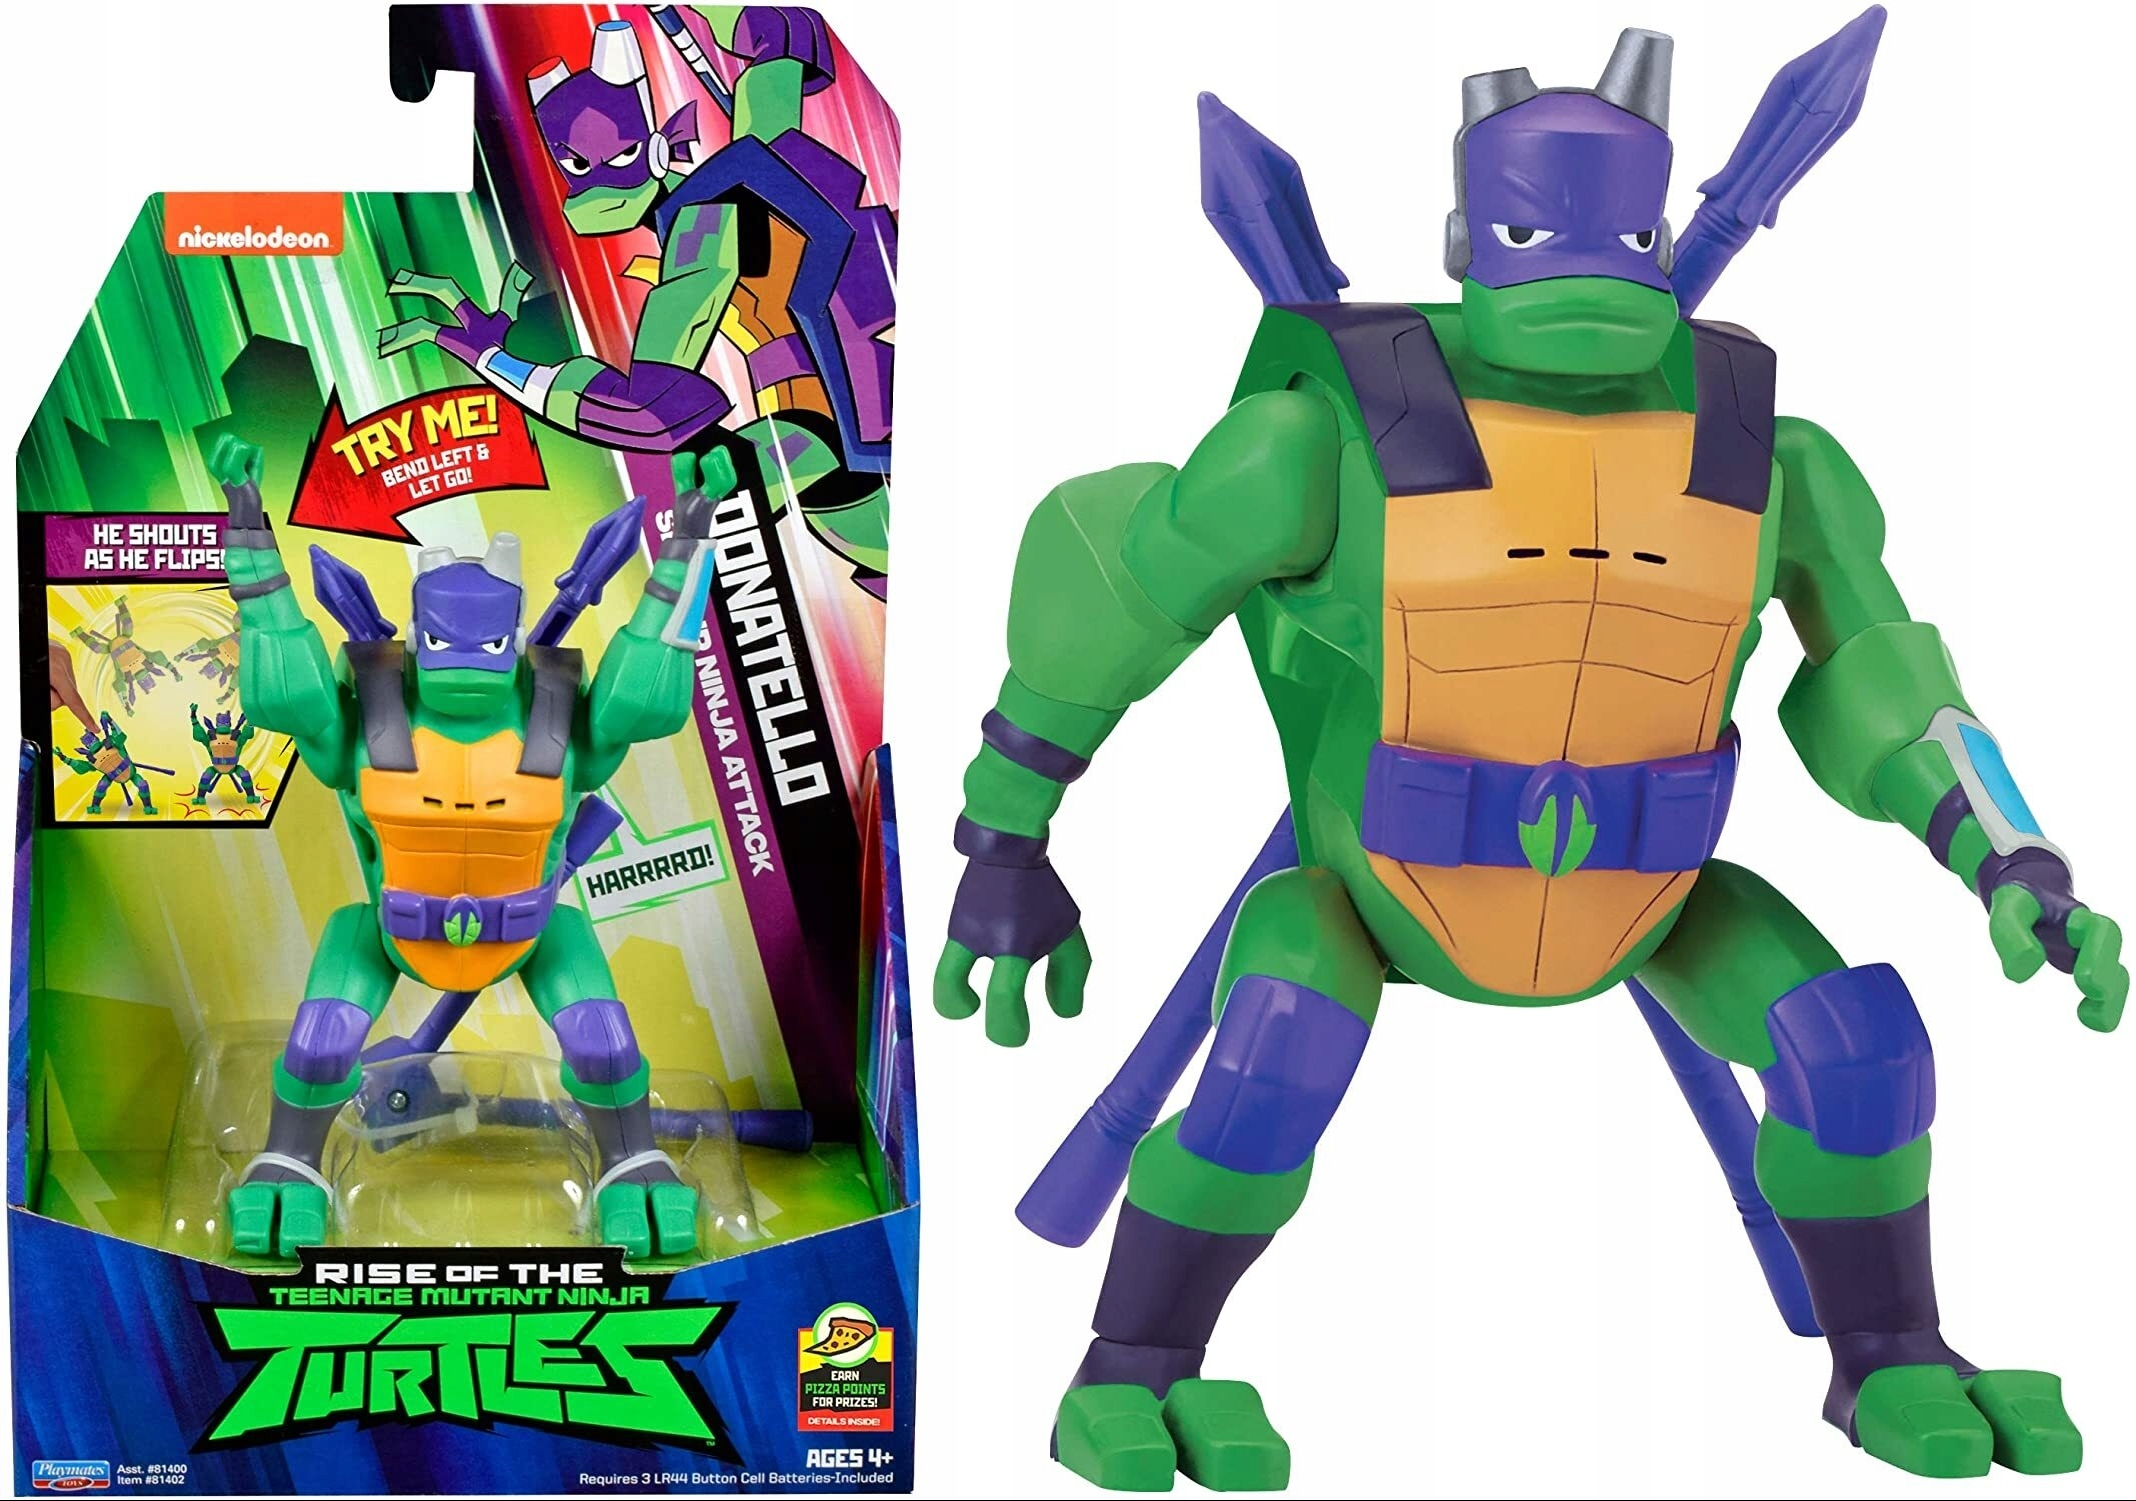 WARRIOR NINJA TURTLES INTERACTIVE DONATELLO.